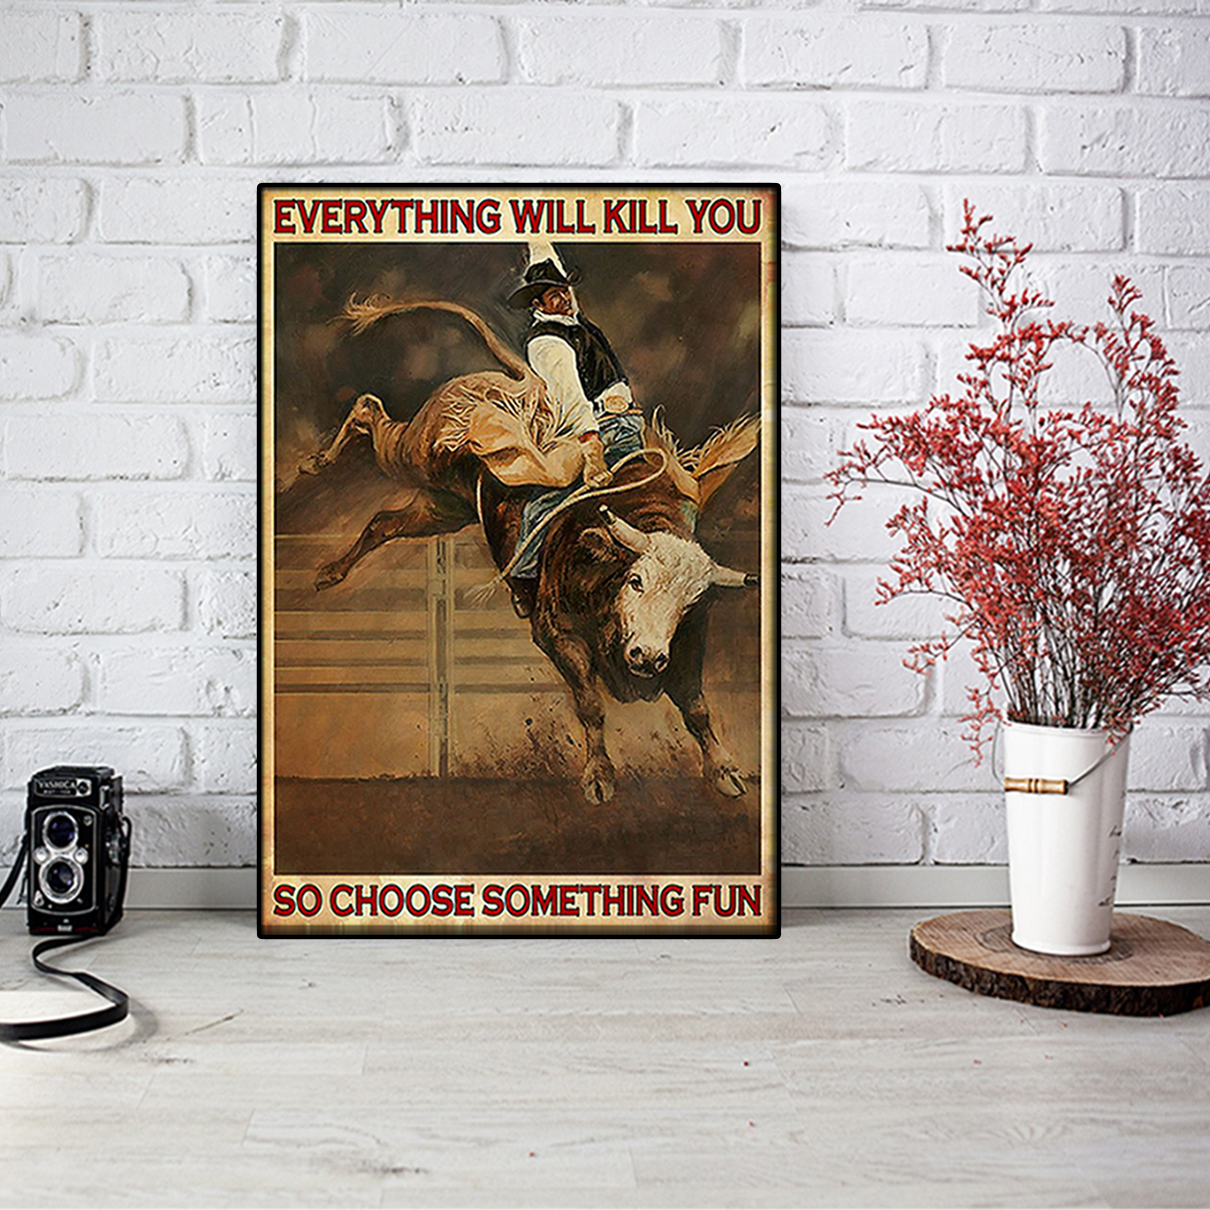 Bull riding rodeo everything will kill you so choose something fun poster A1